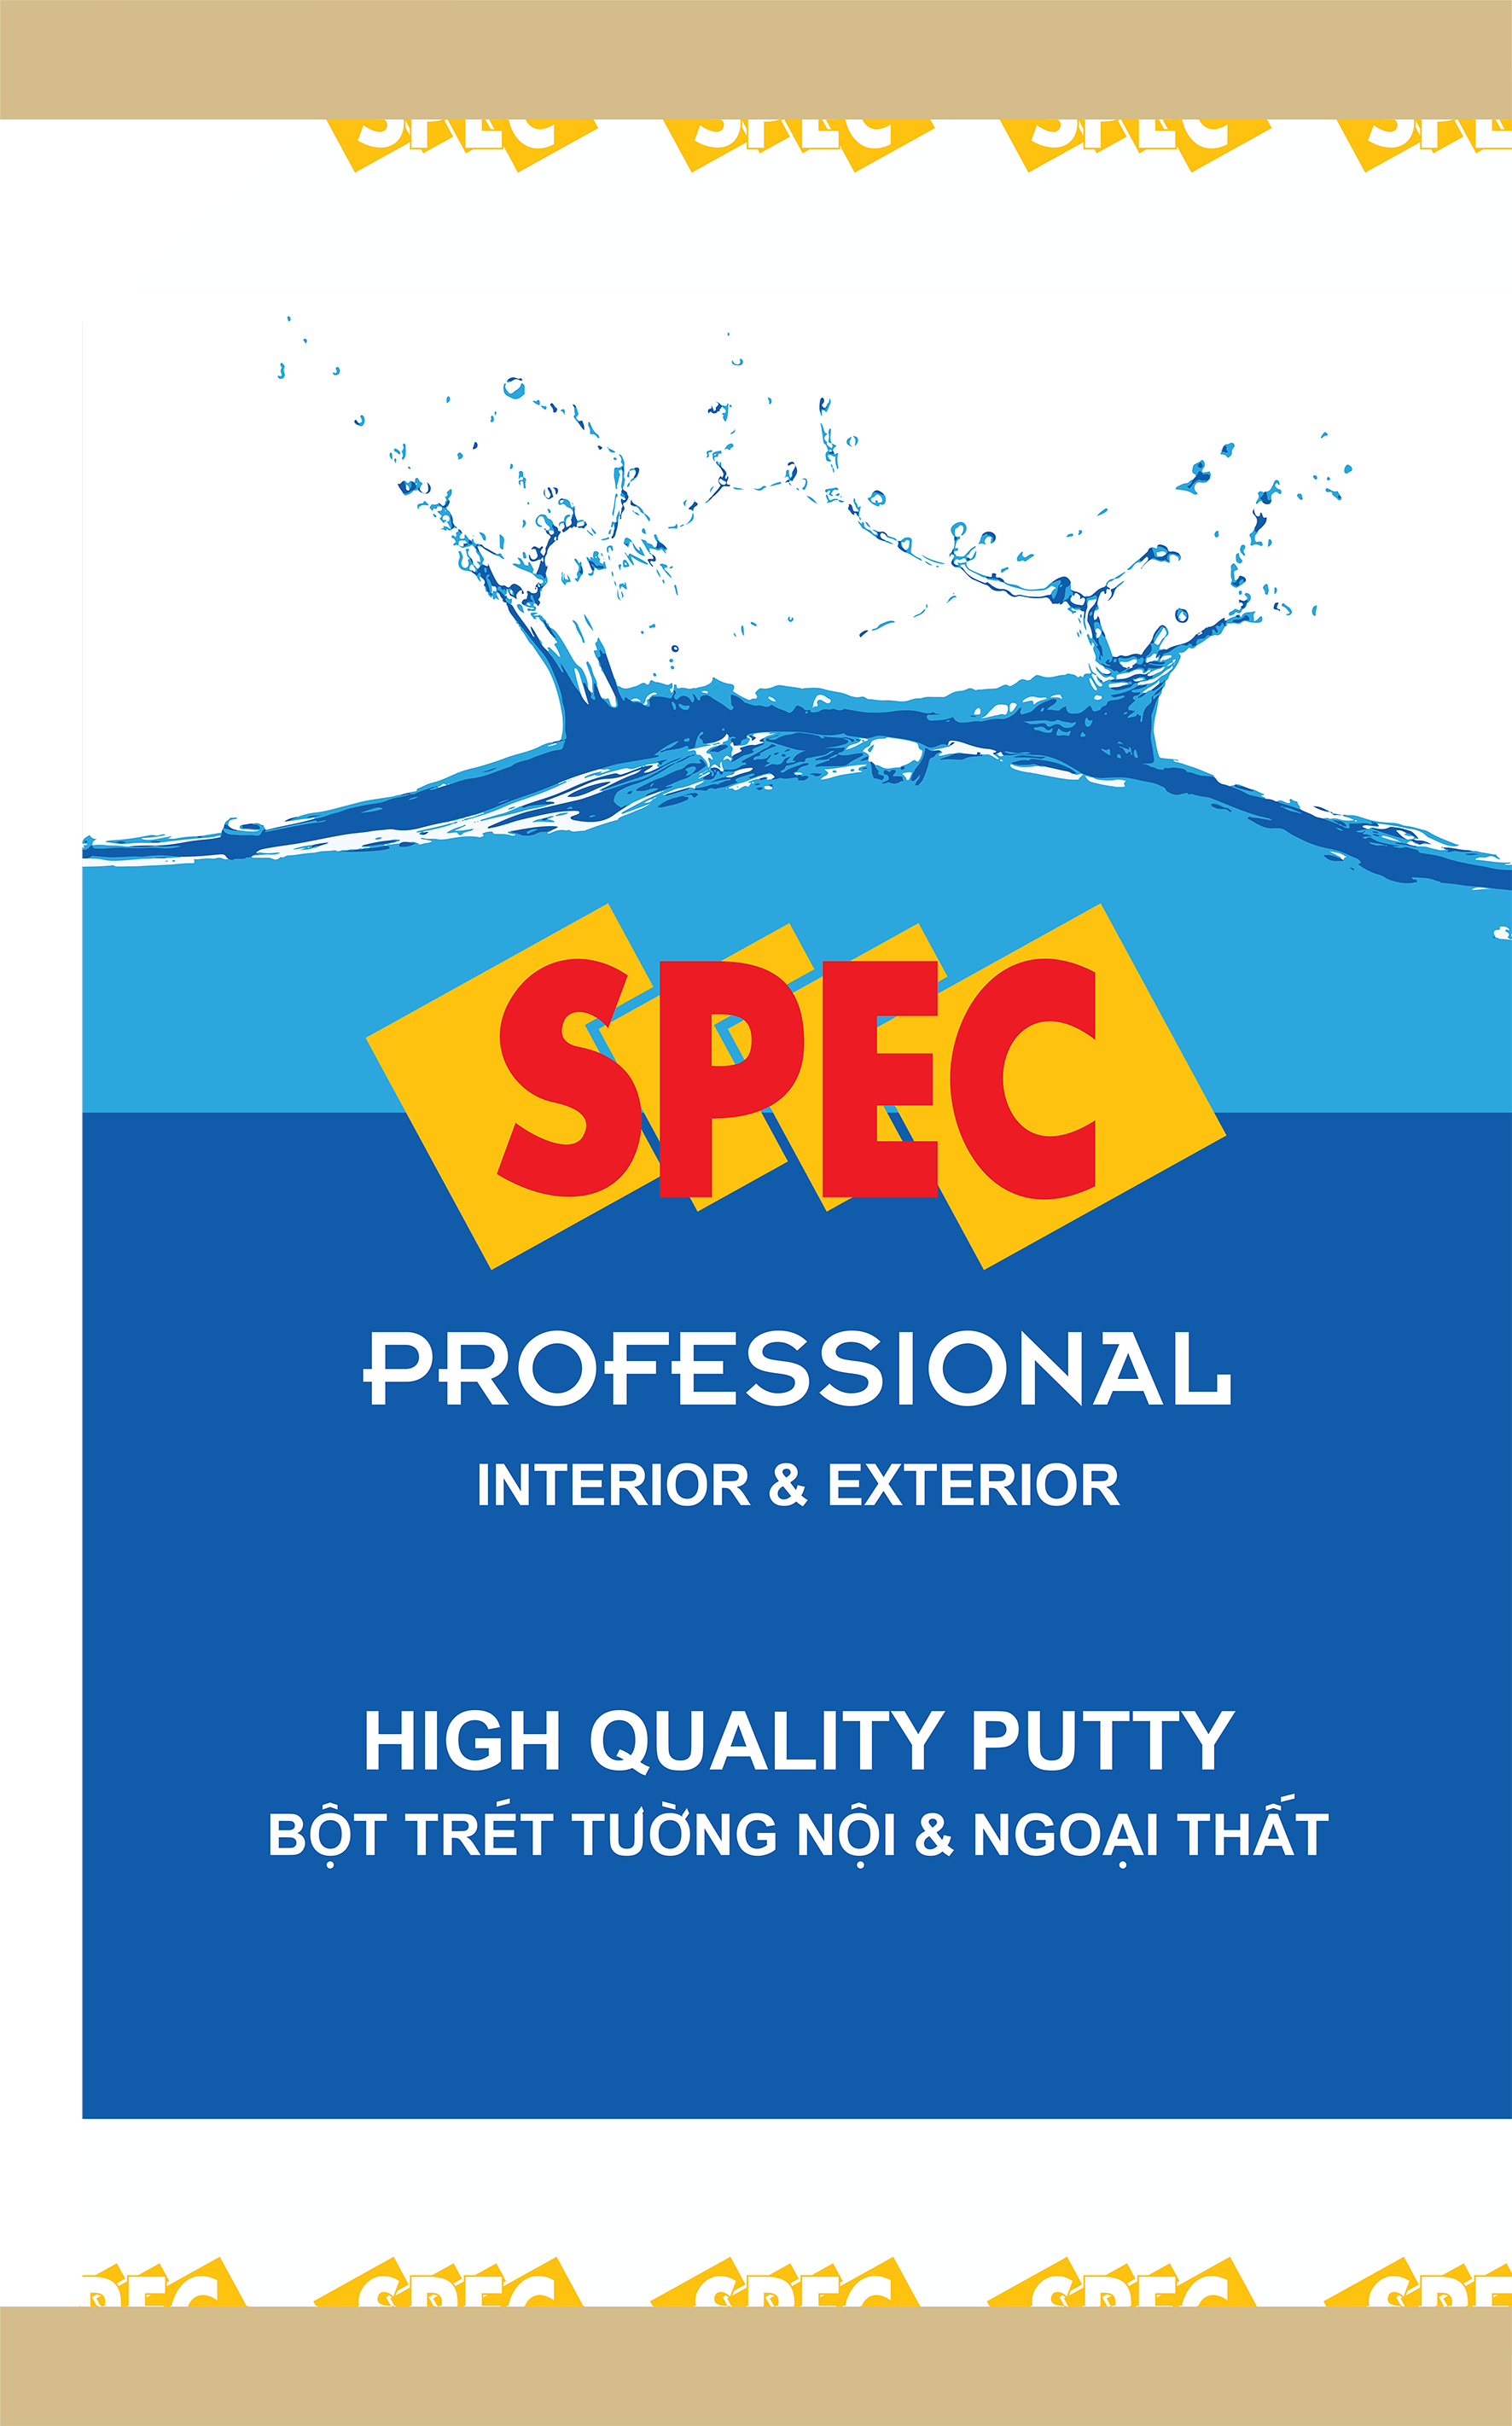 bot-tret-truong-spec-professional-putty-int-ext-bot-tret-tuong-noi-that-ngoai-that-spec